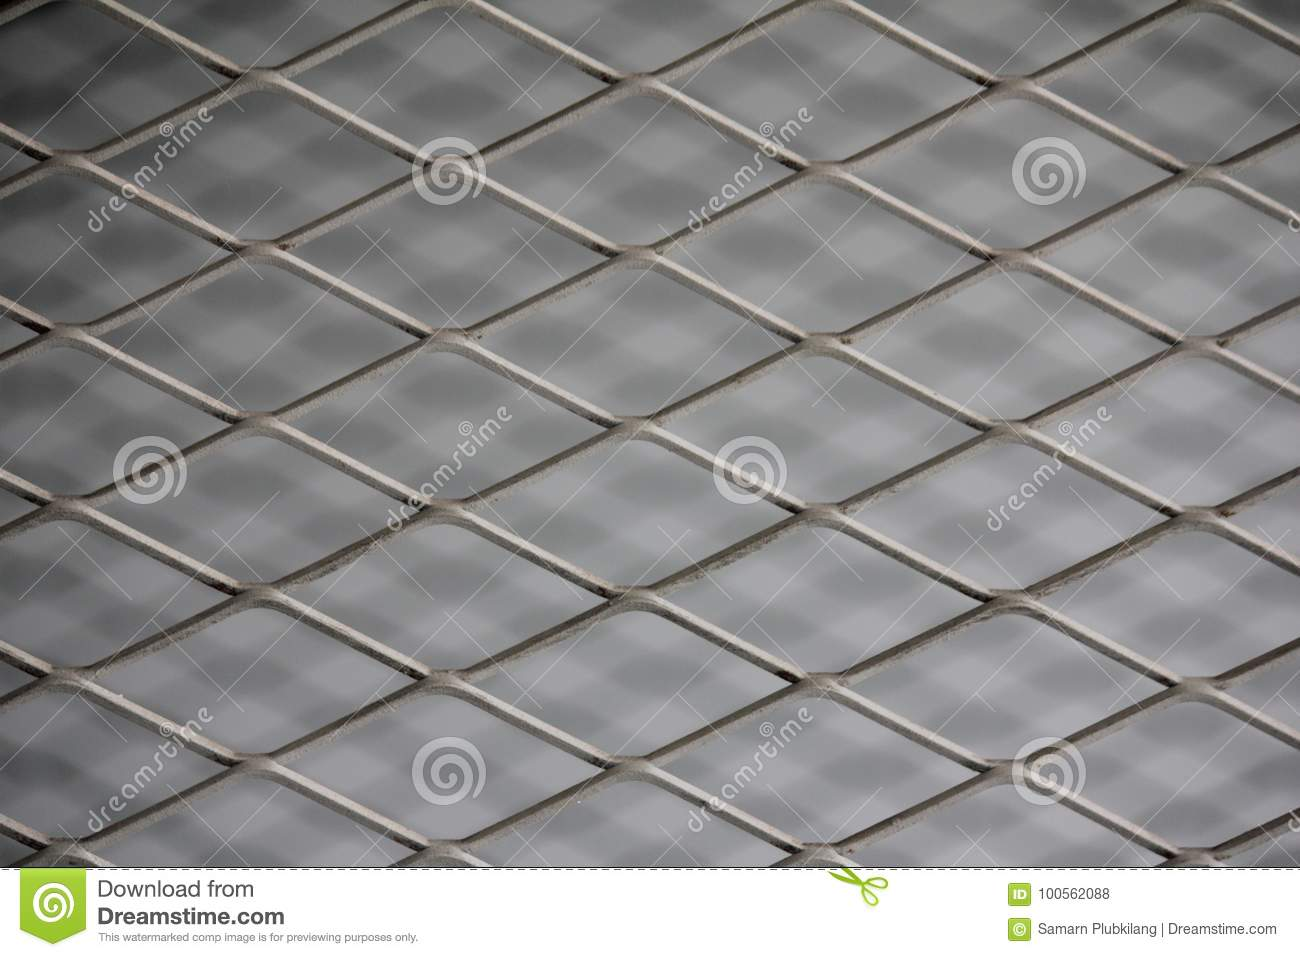 Fence Mesh Netting.Wire Fence Background. Seamless Metal Chain Link ...